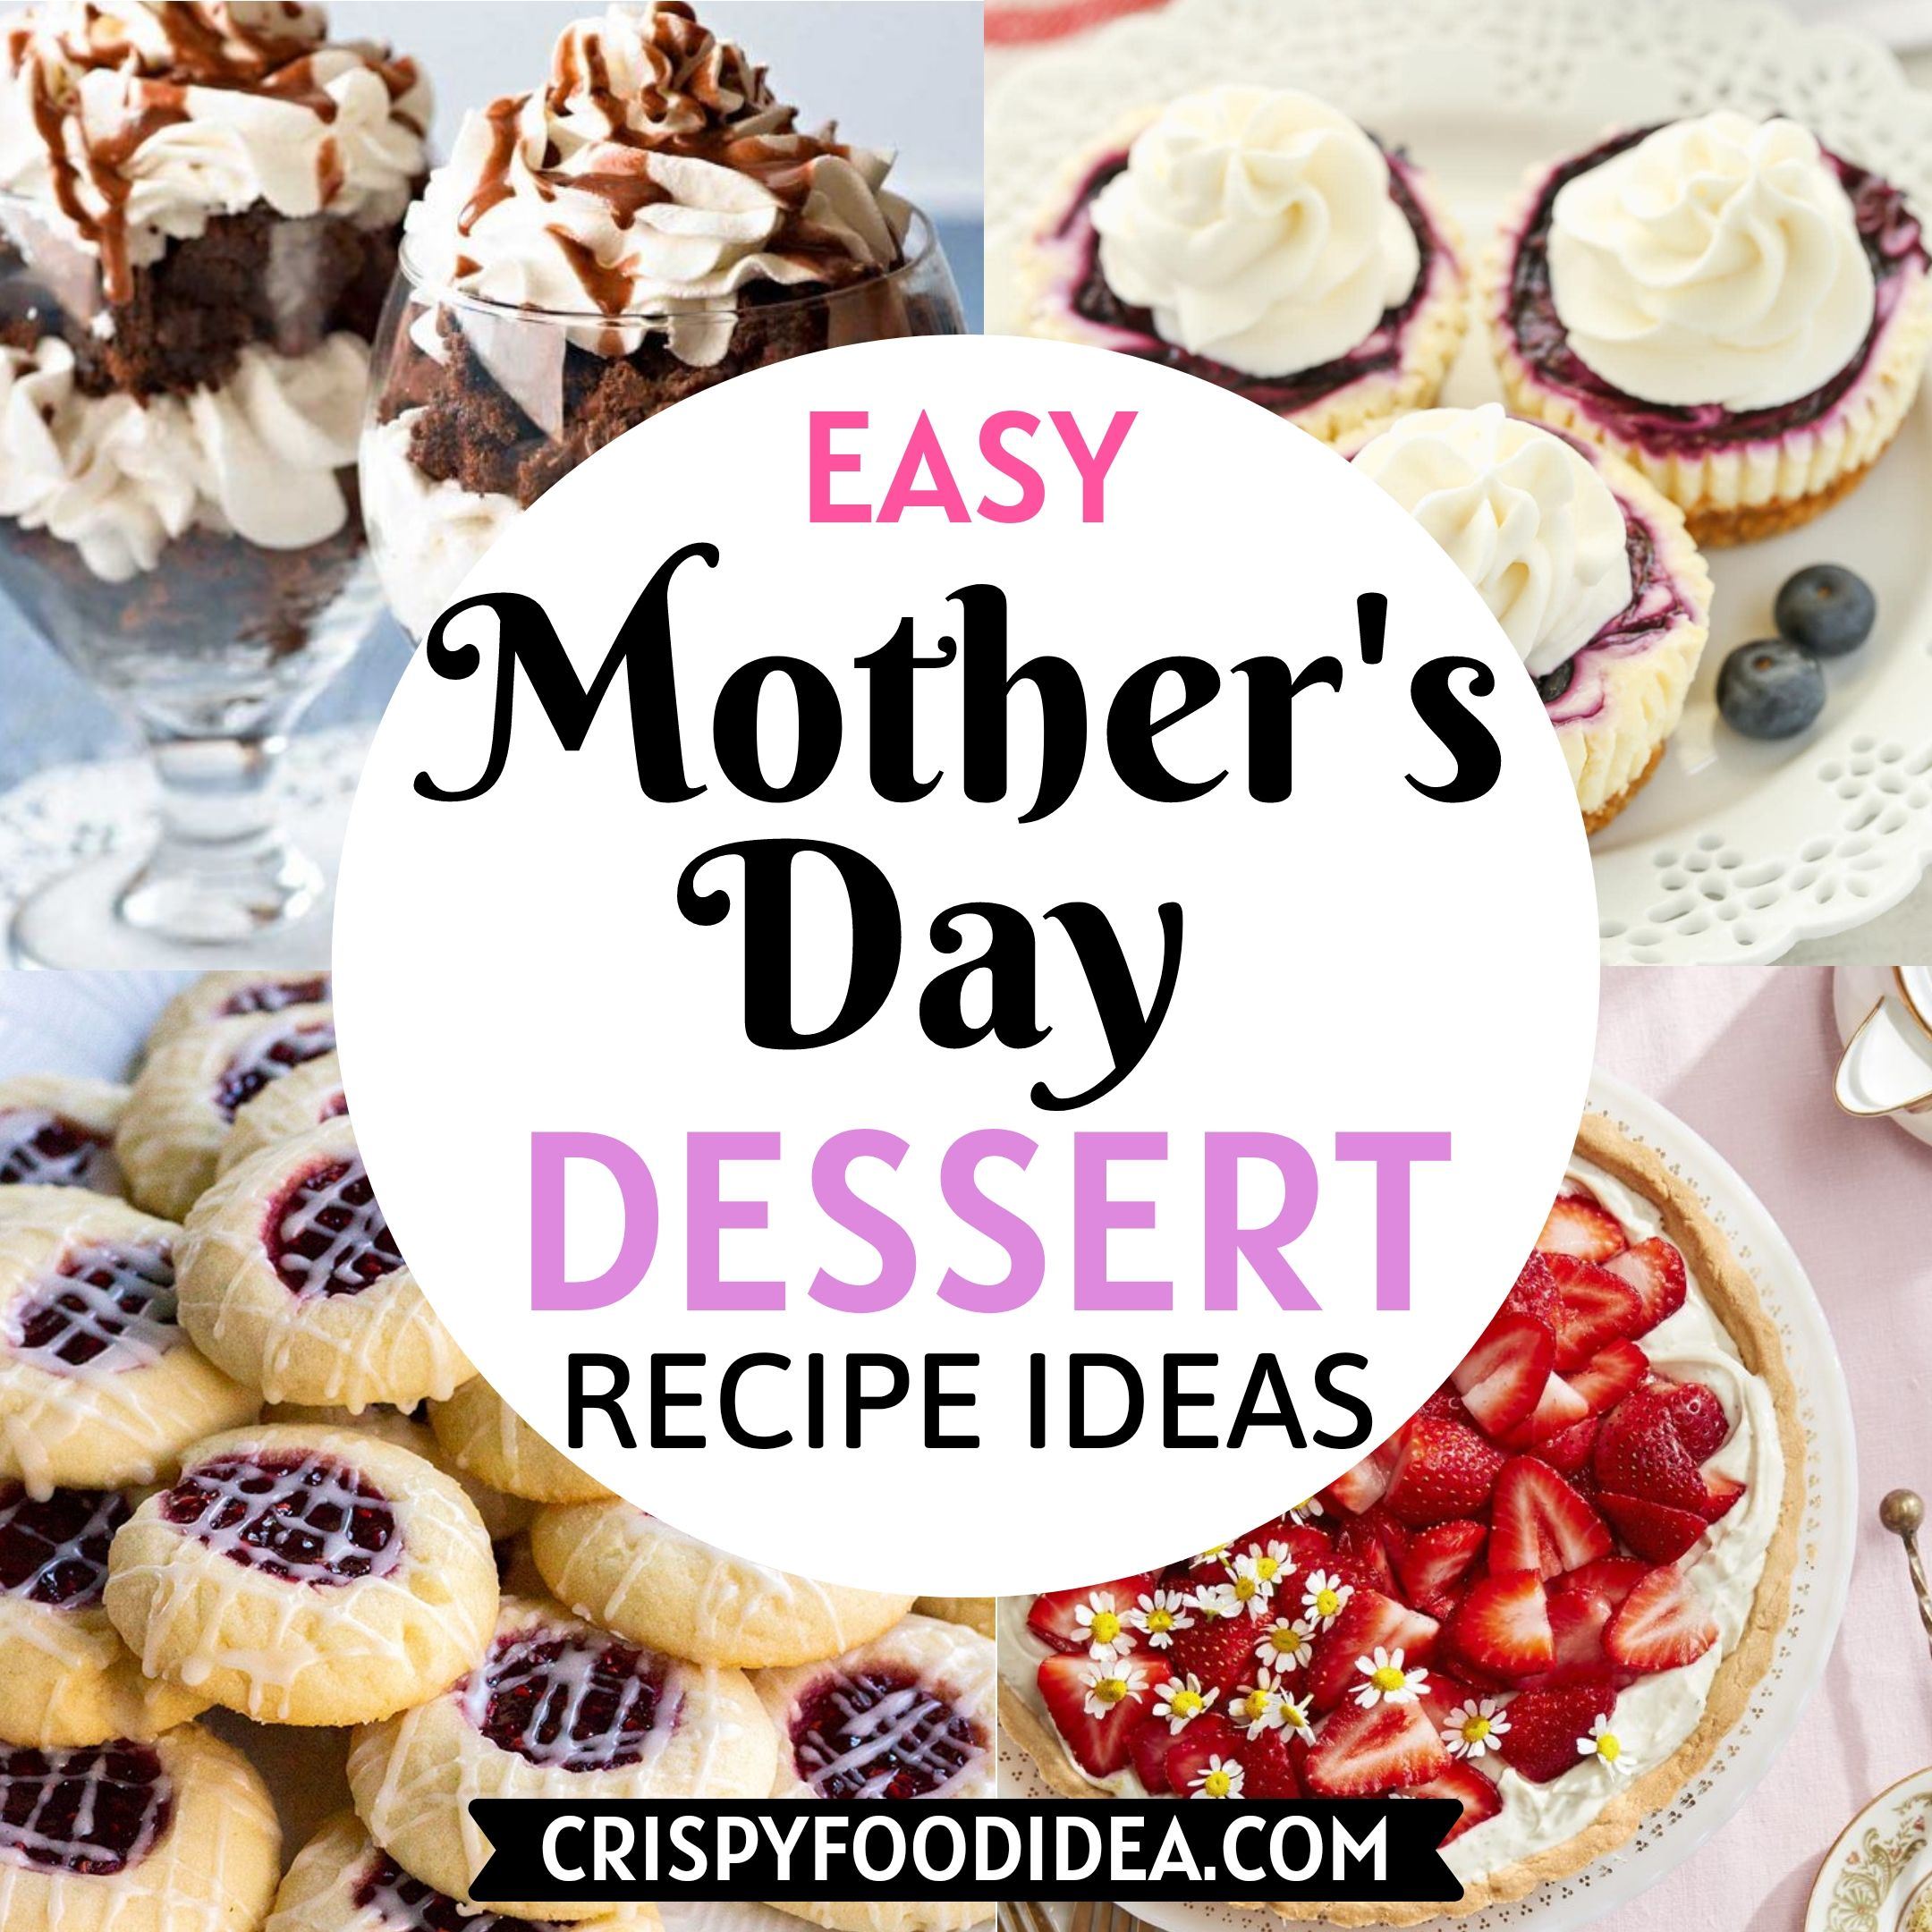 Mother's Day Dessert Recipes.